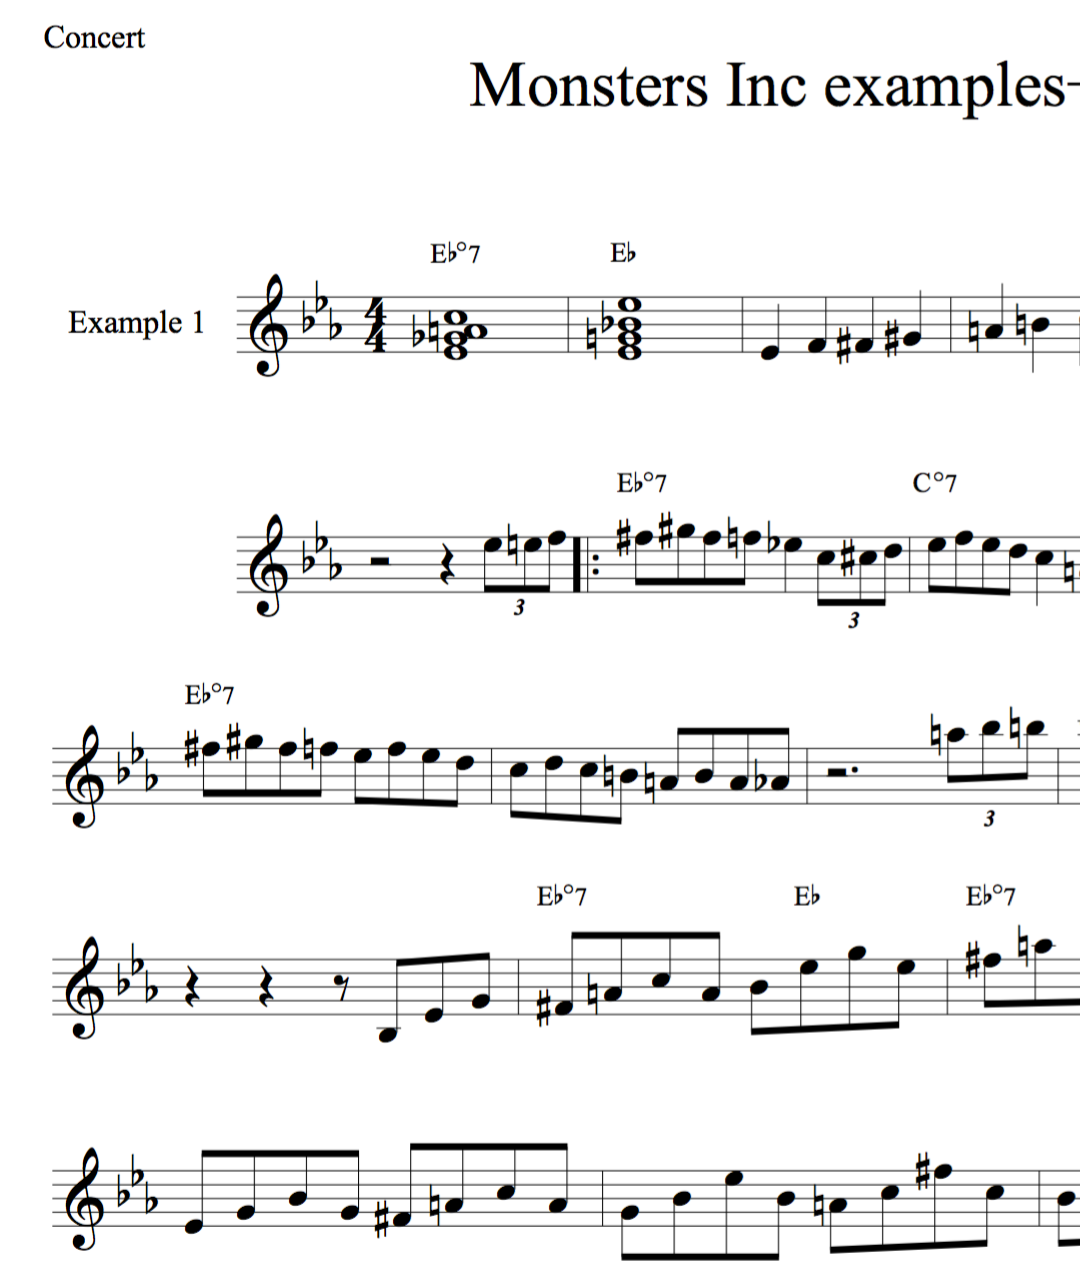 Monsters In exercises-jazz duets